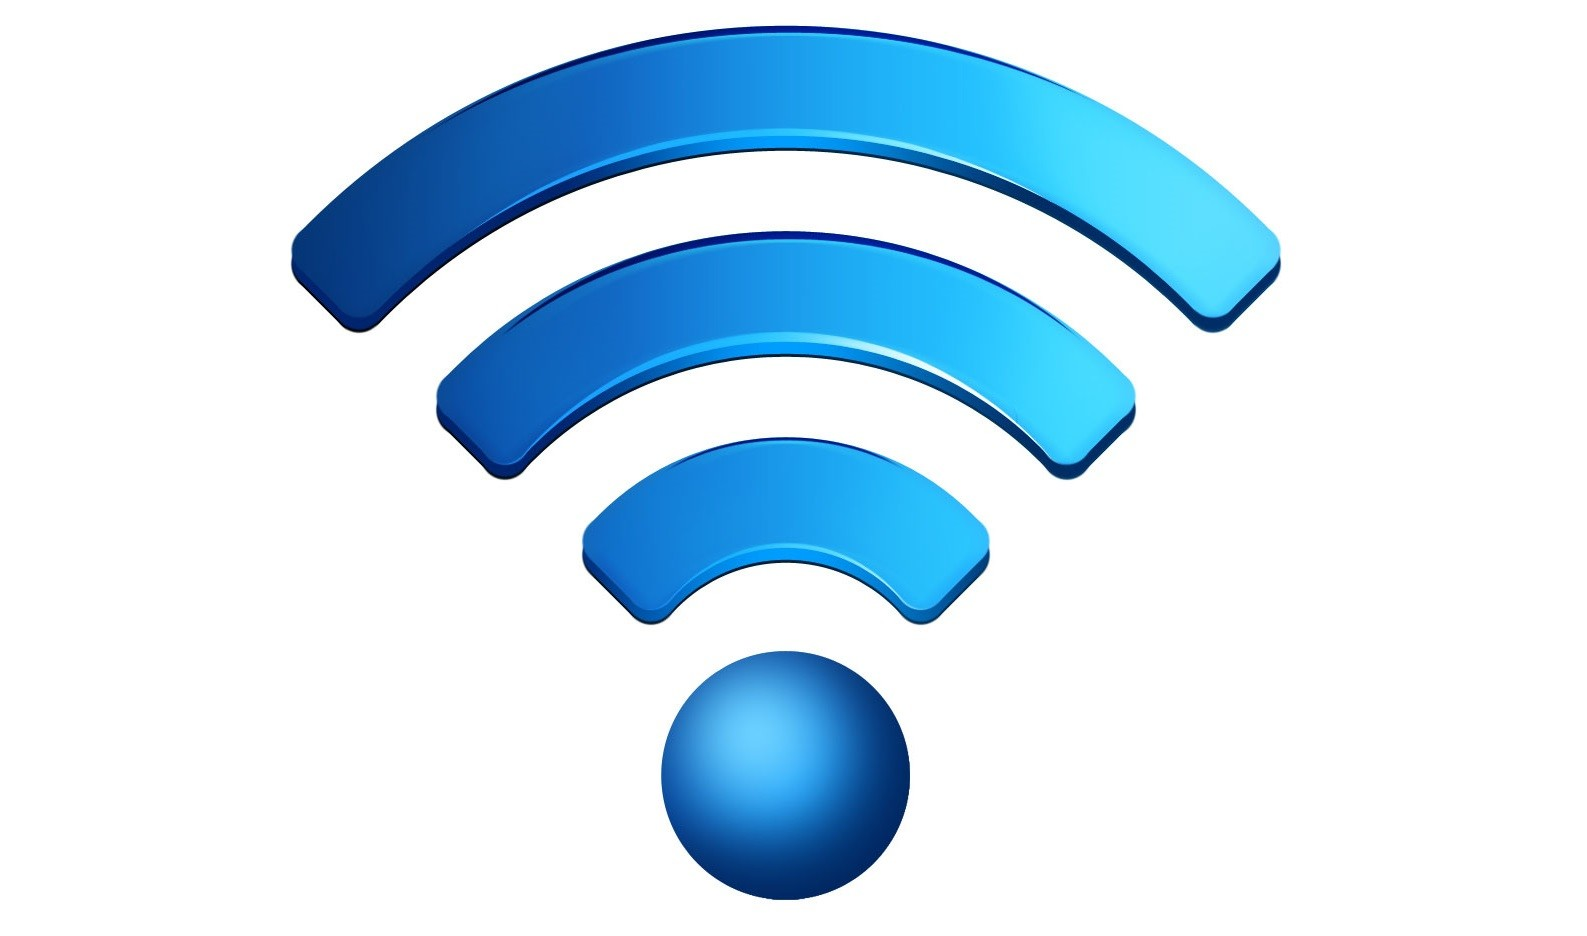 WPA2 protocol violated: Wi-Fi networks are vulnerable